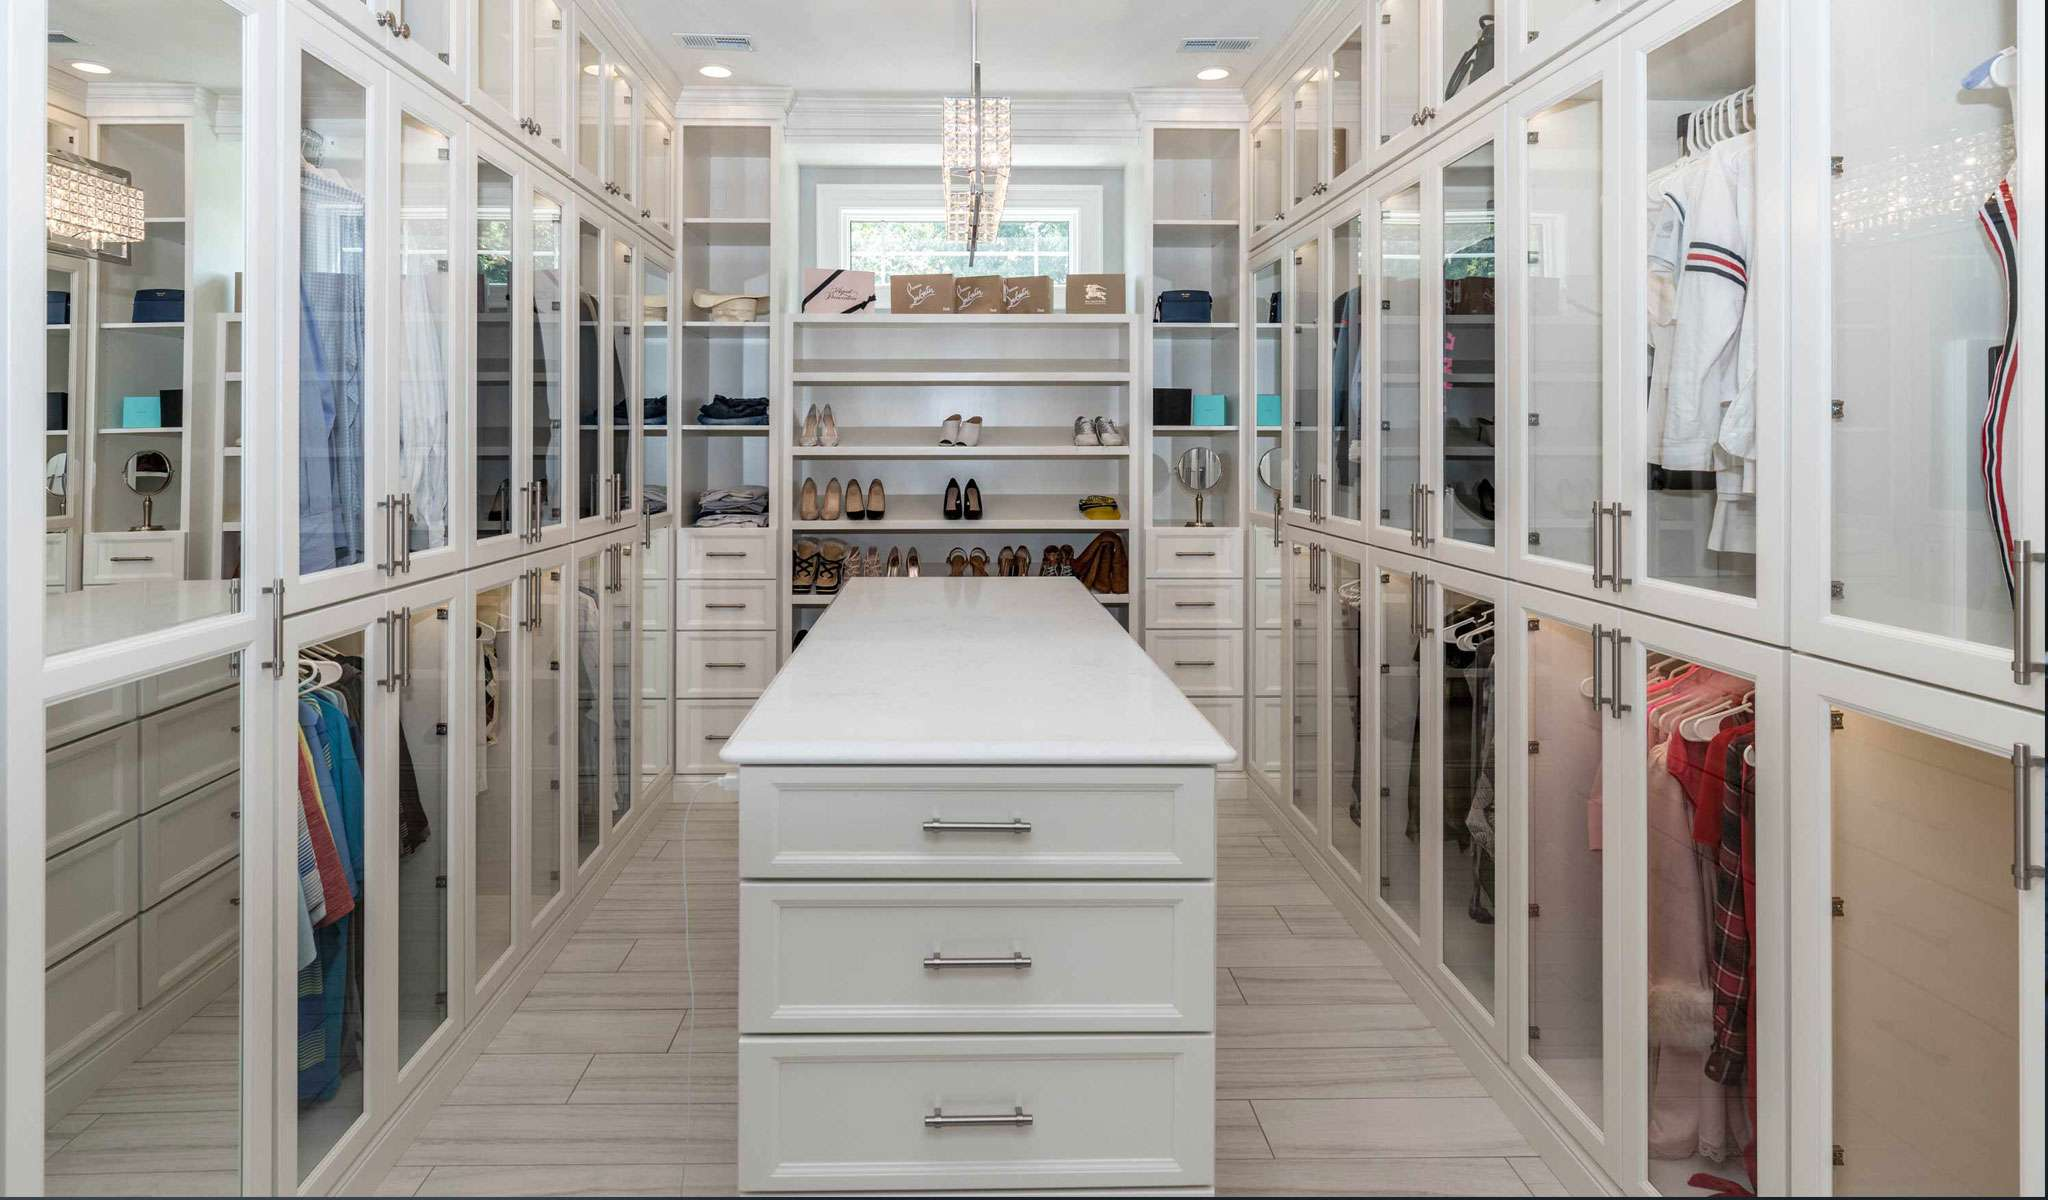 Walk-in Wardrobes - For Fashion Lovers and Planners alike